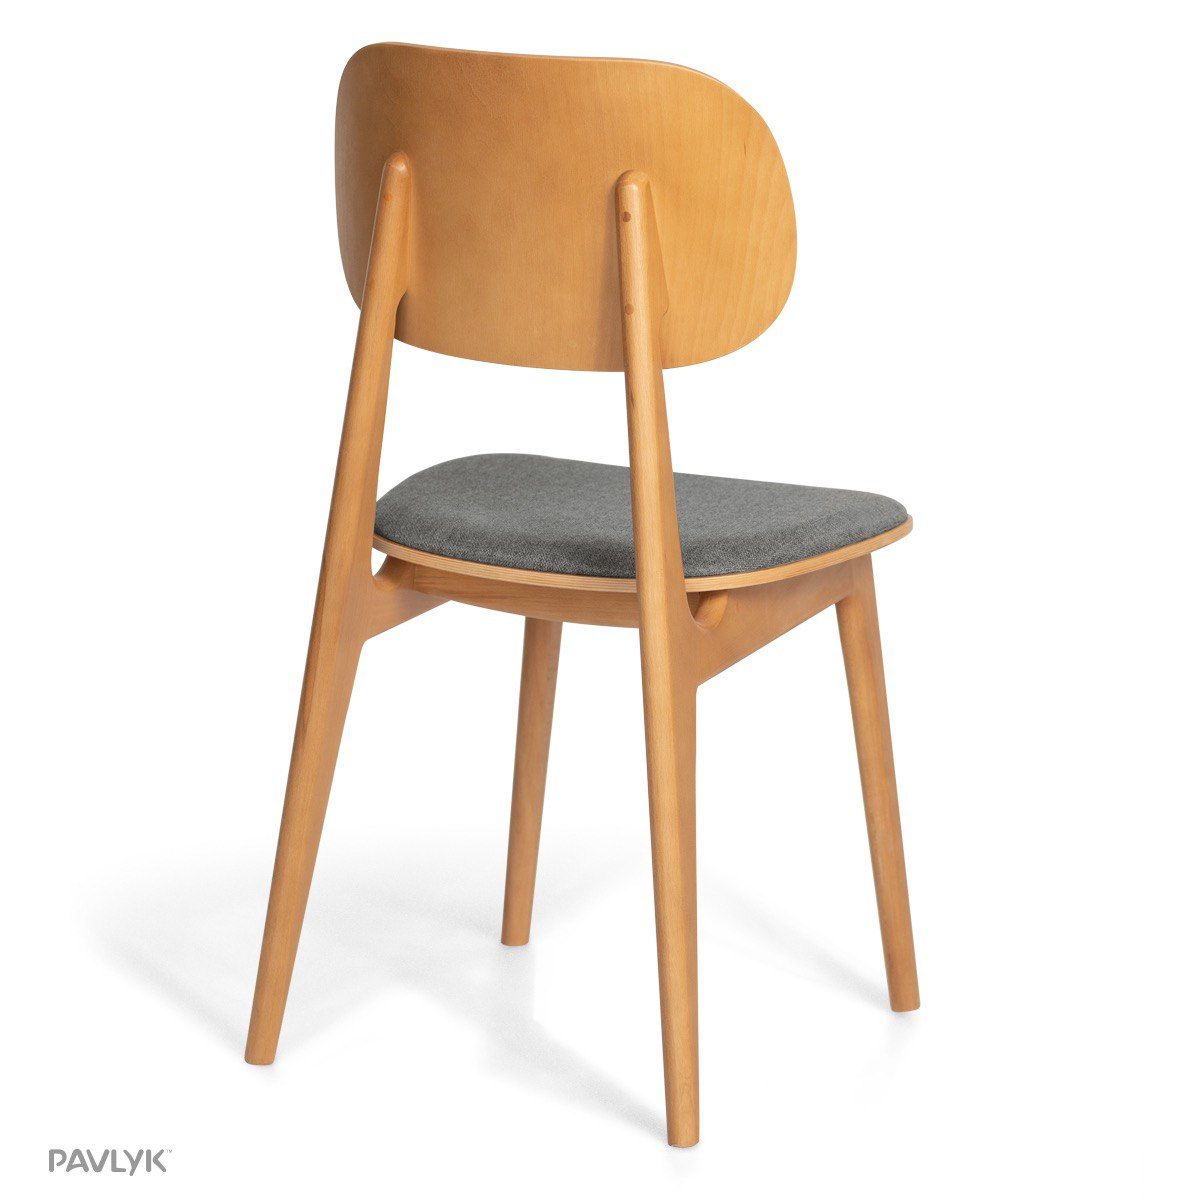 Lula Soft Chair Buy Wooden Lula For Kitchen Or Living Room